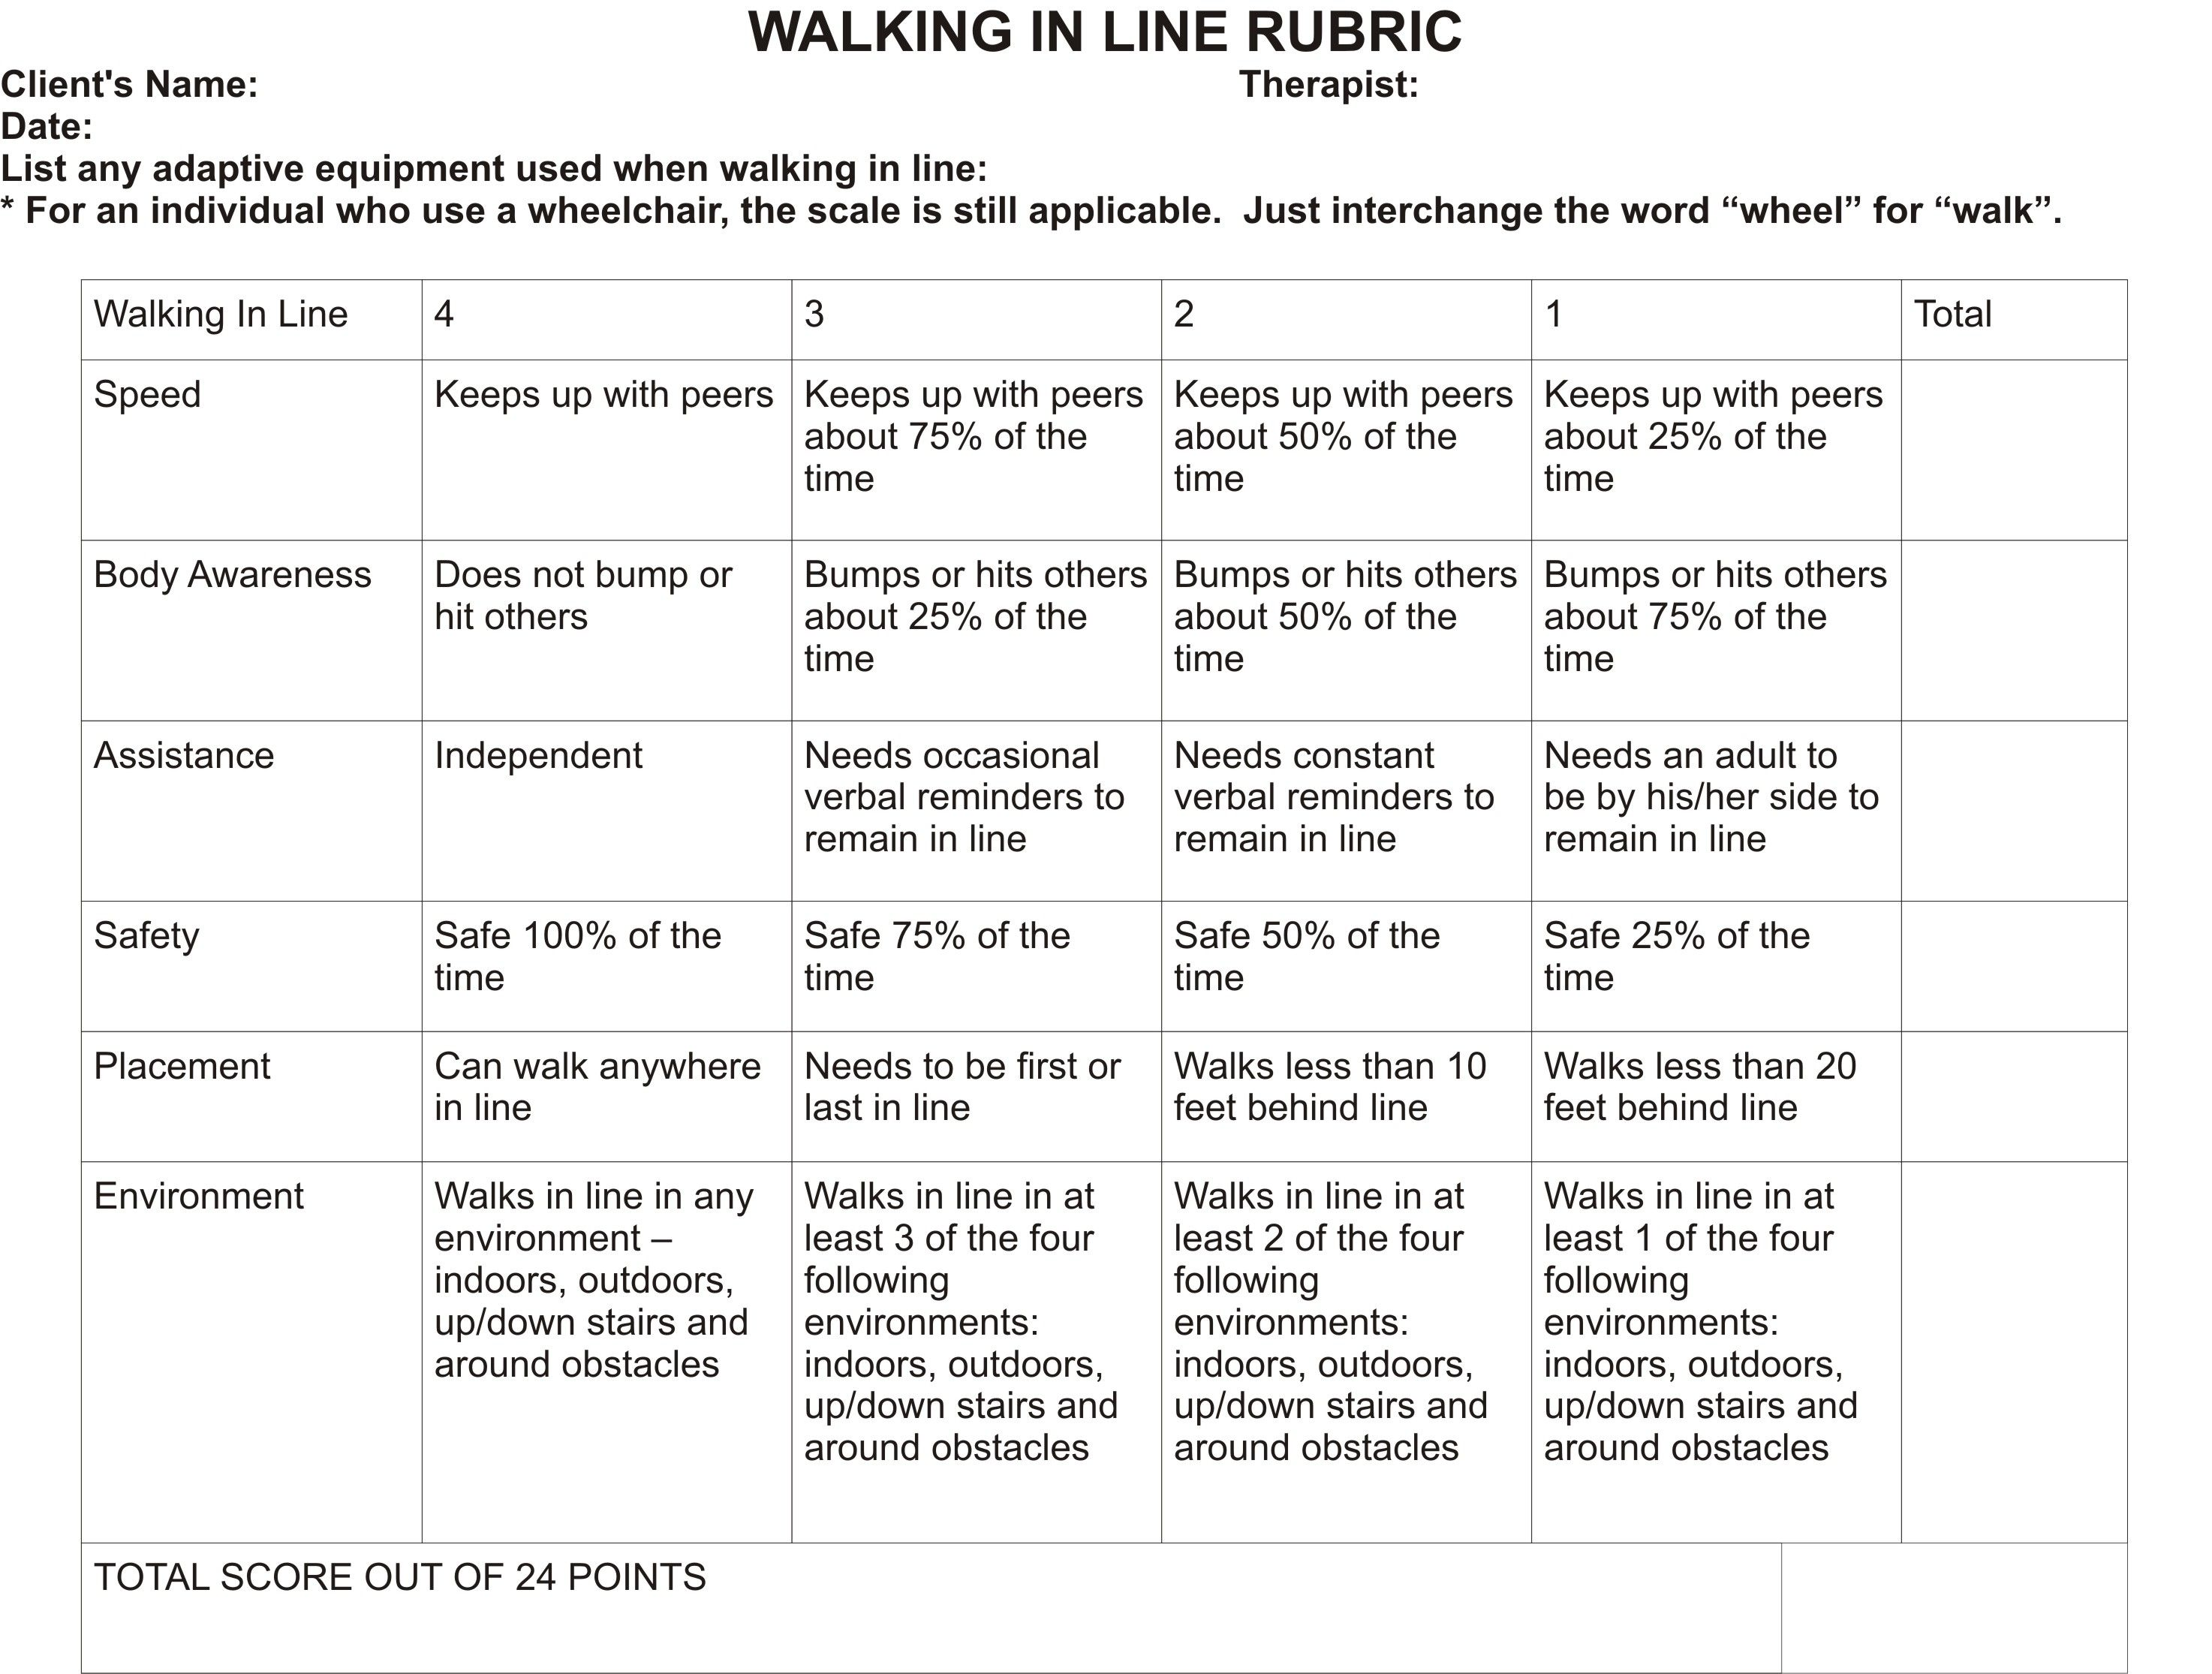 Mobility Rubric